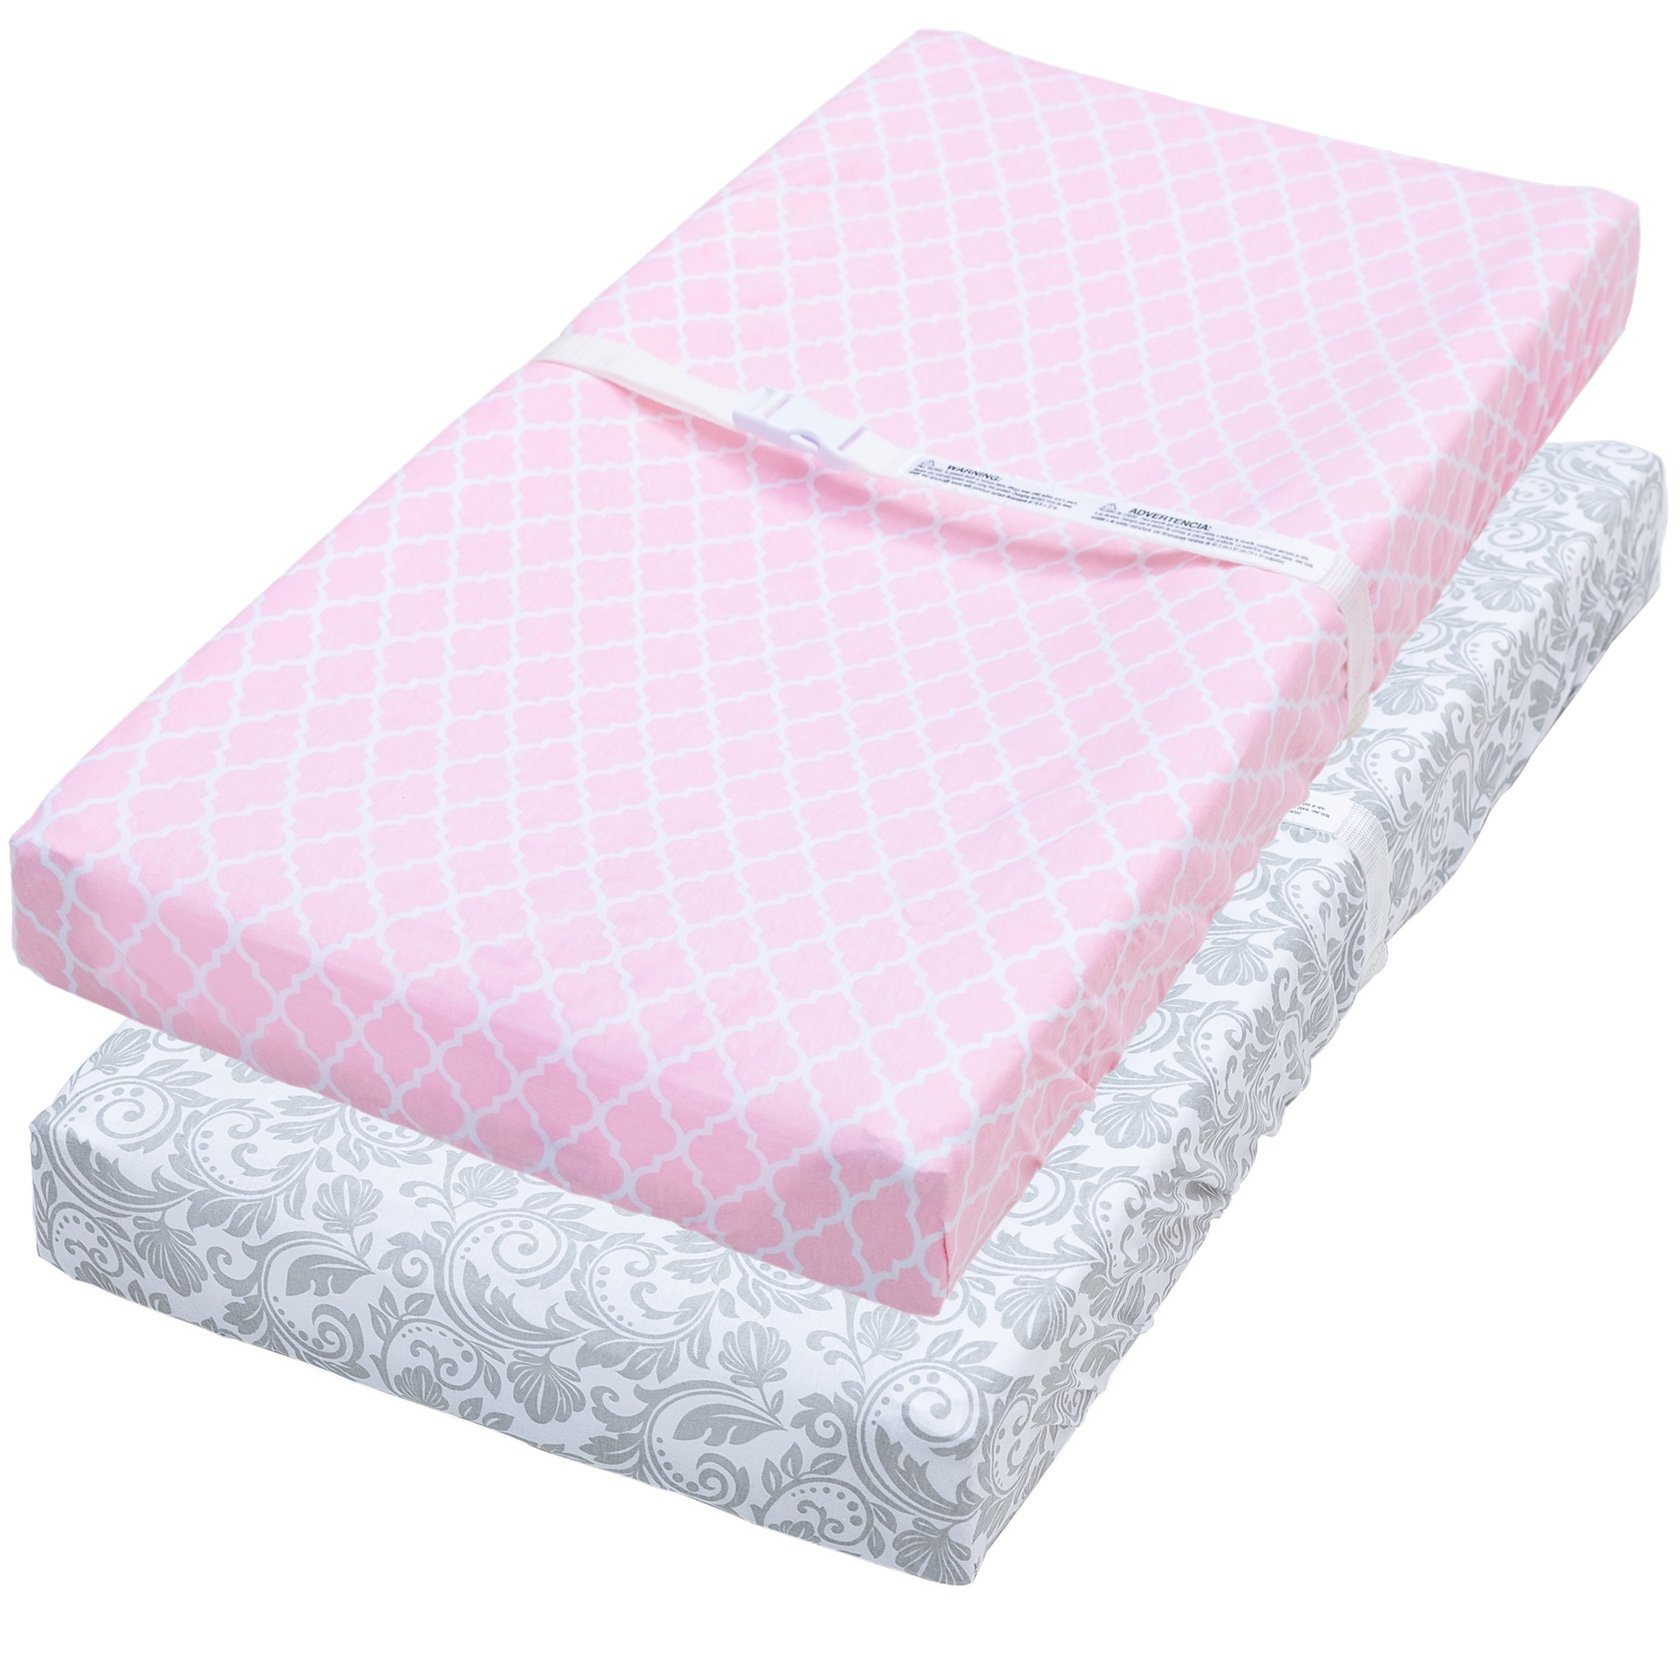 Changing Pad Cover, 2 Pack Pink Quatrefoil/Gray Floral Fitted Soft Jersey Cotton